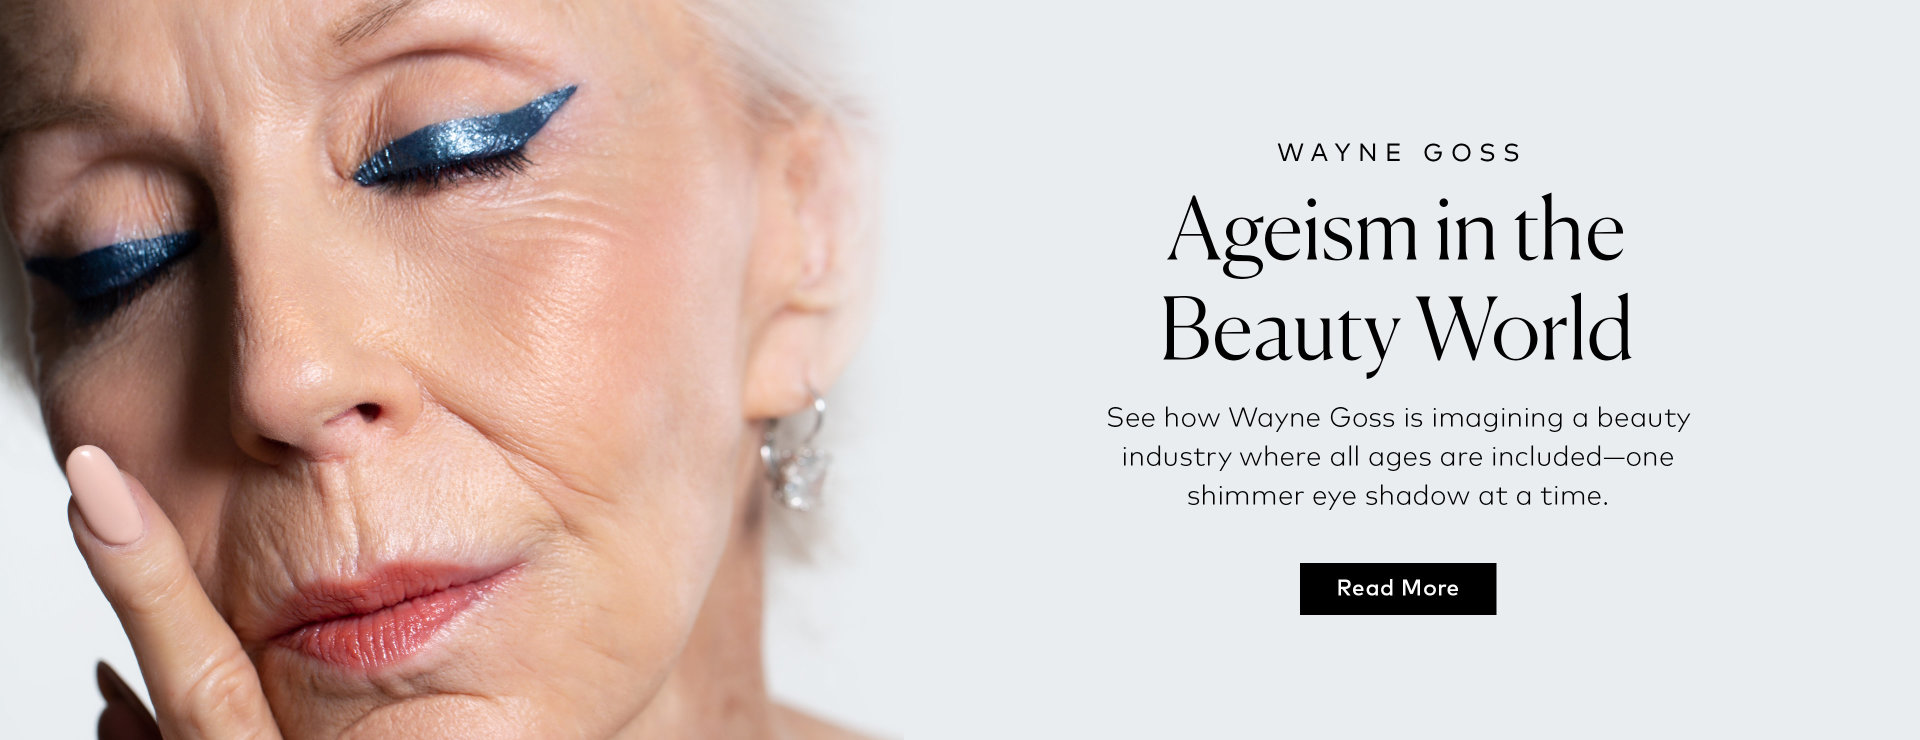 Read how Wayne Goss fights ageism in the beauty industry here!